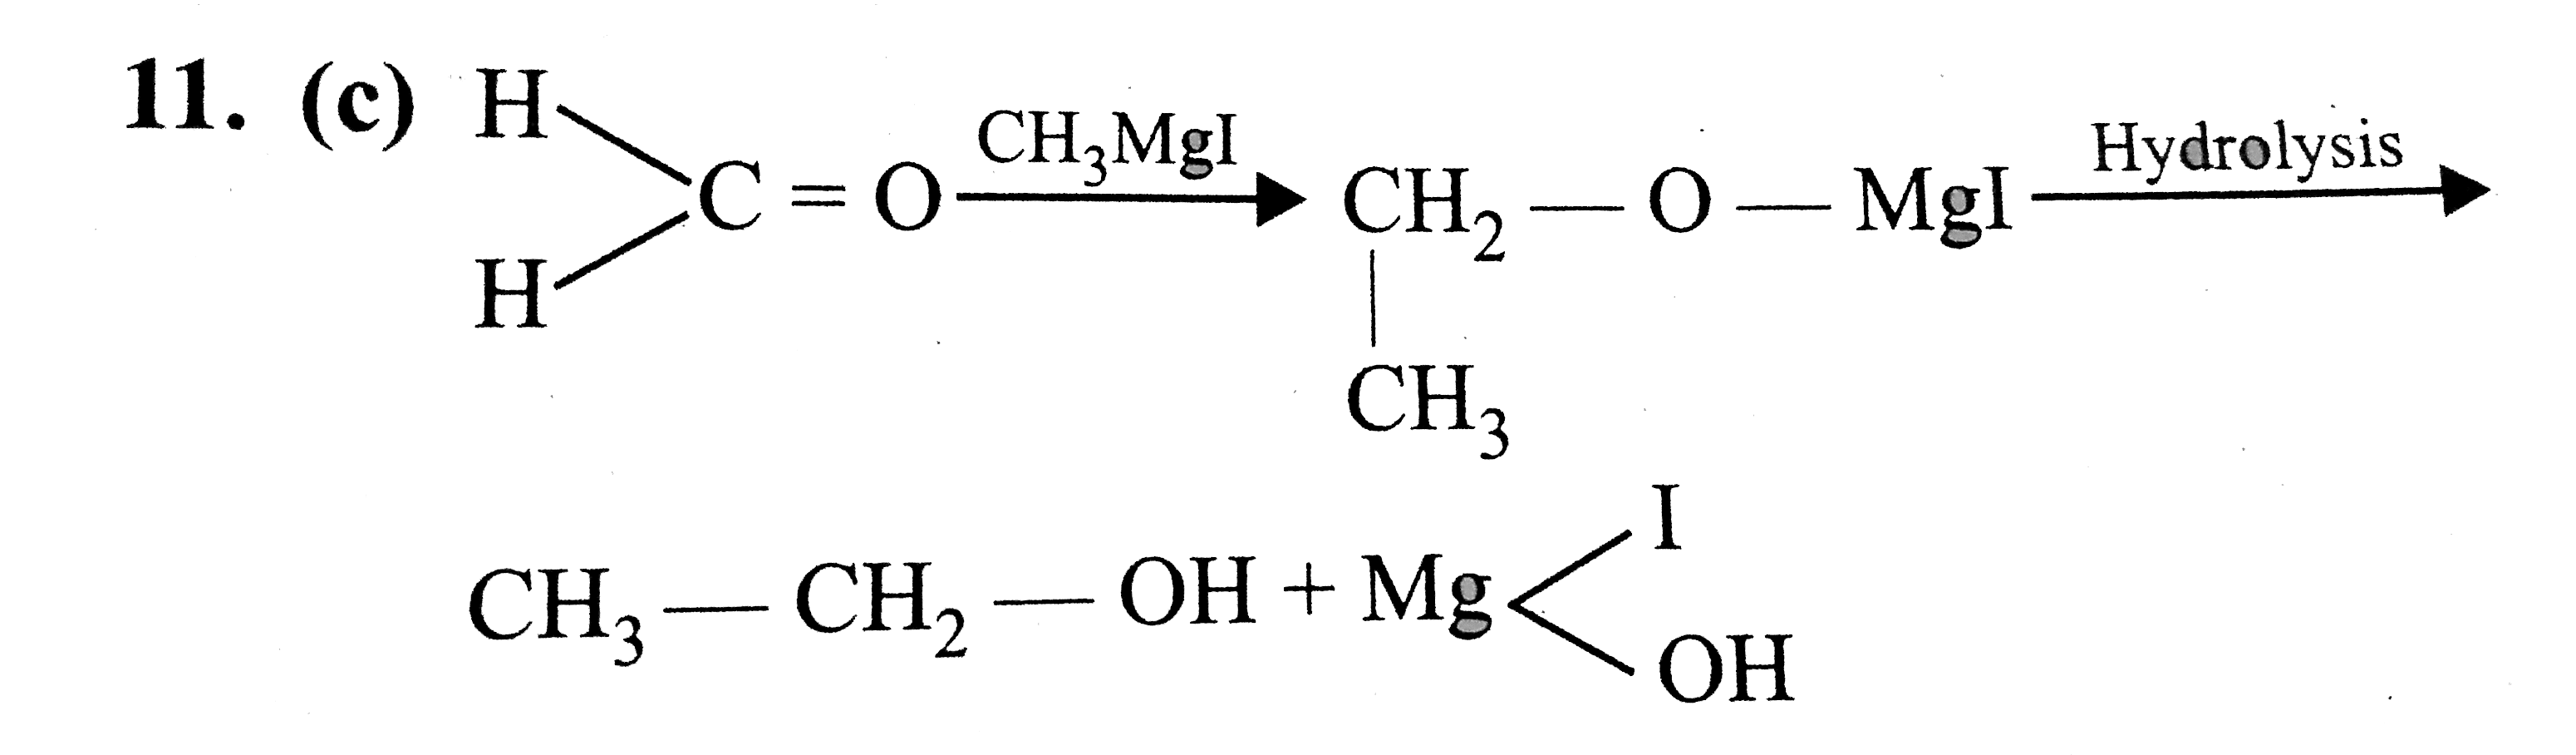 Formaldehyde gives an additive product with Methylmagnesium